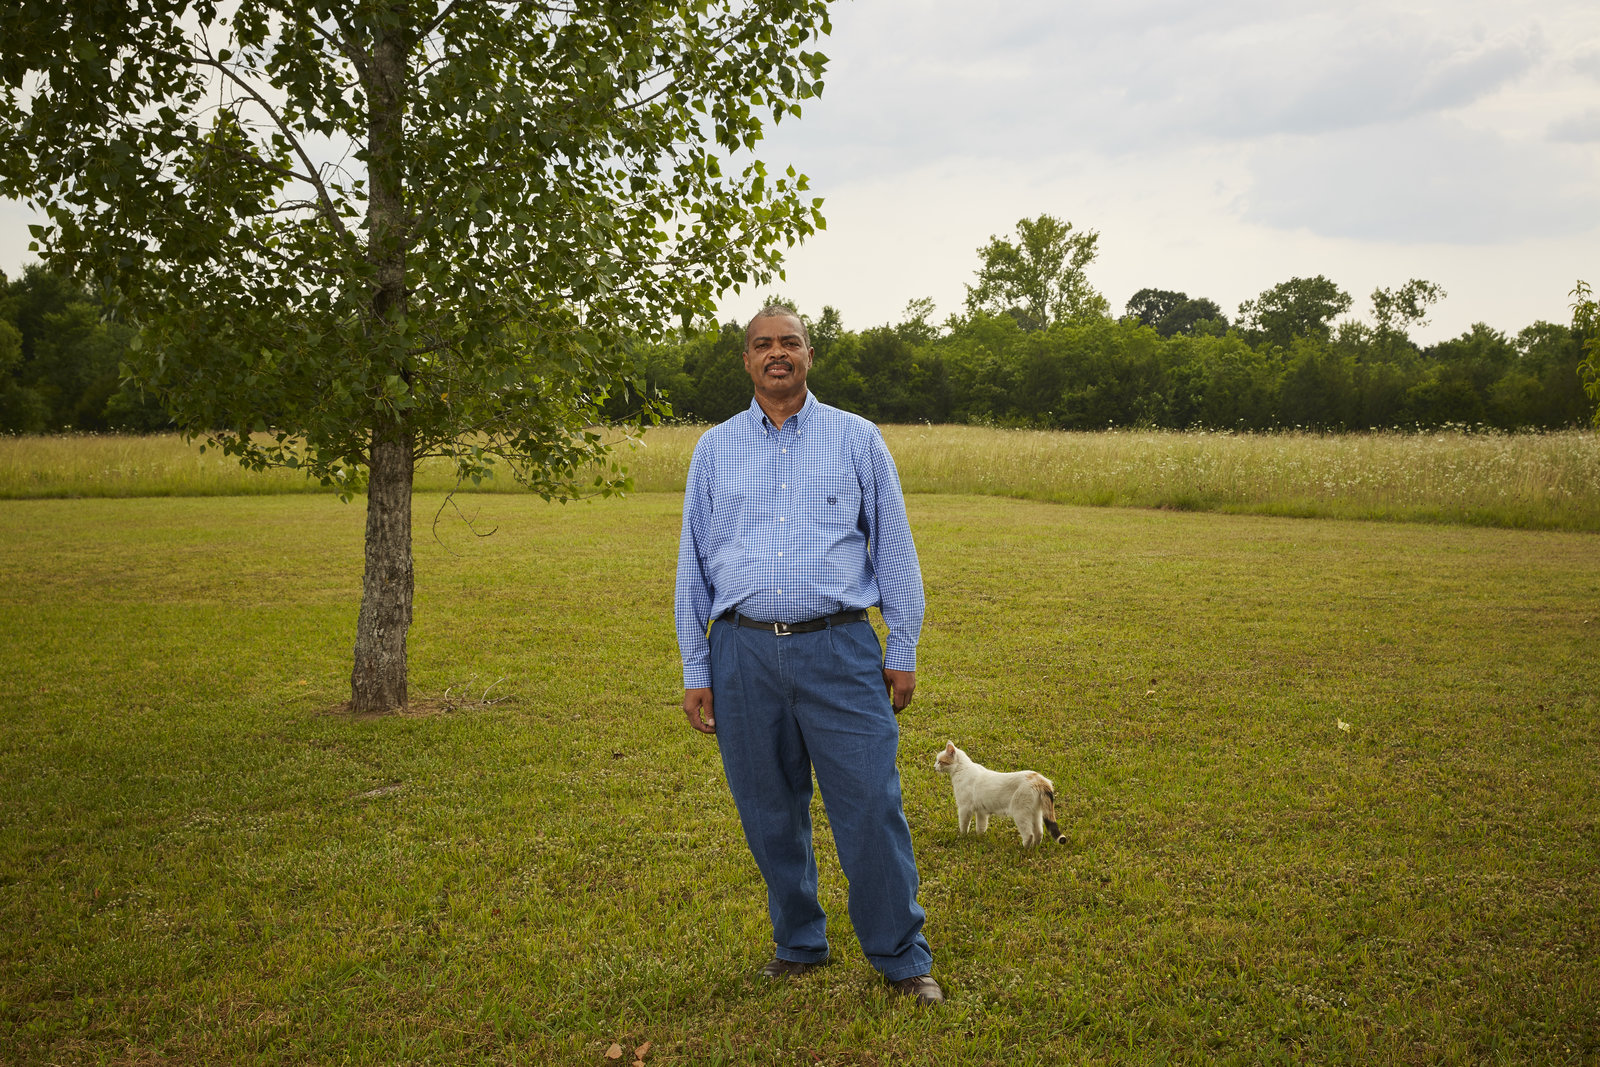 Ben Eaton was one of the Uniontown, Ala., residents sued by a local landfill